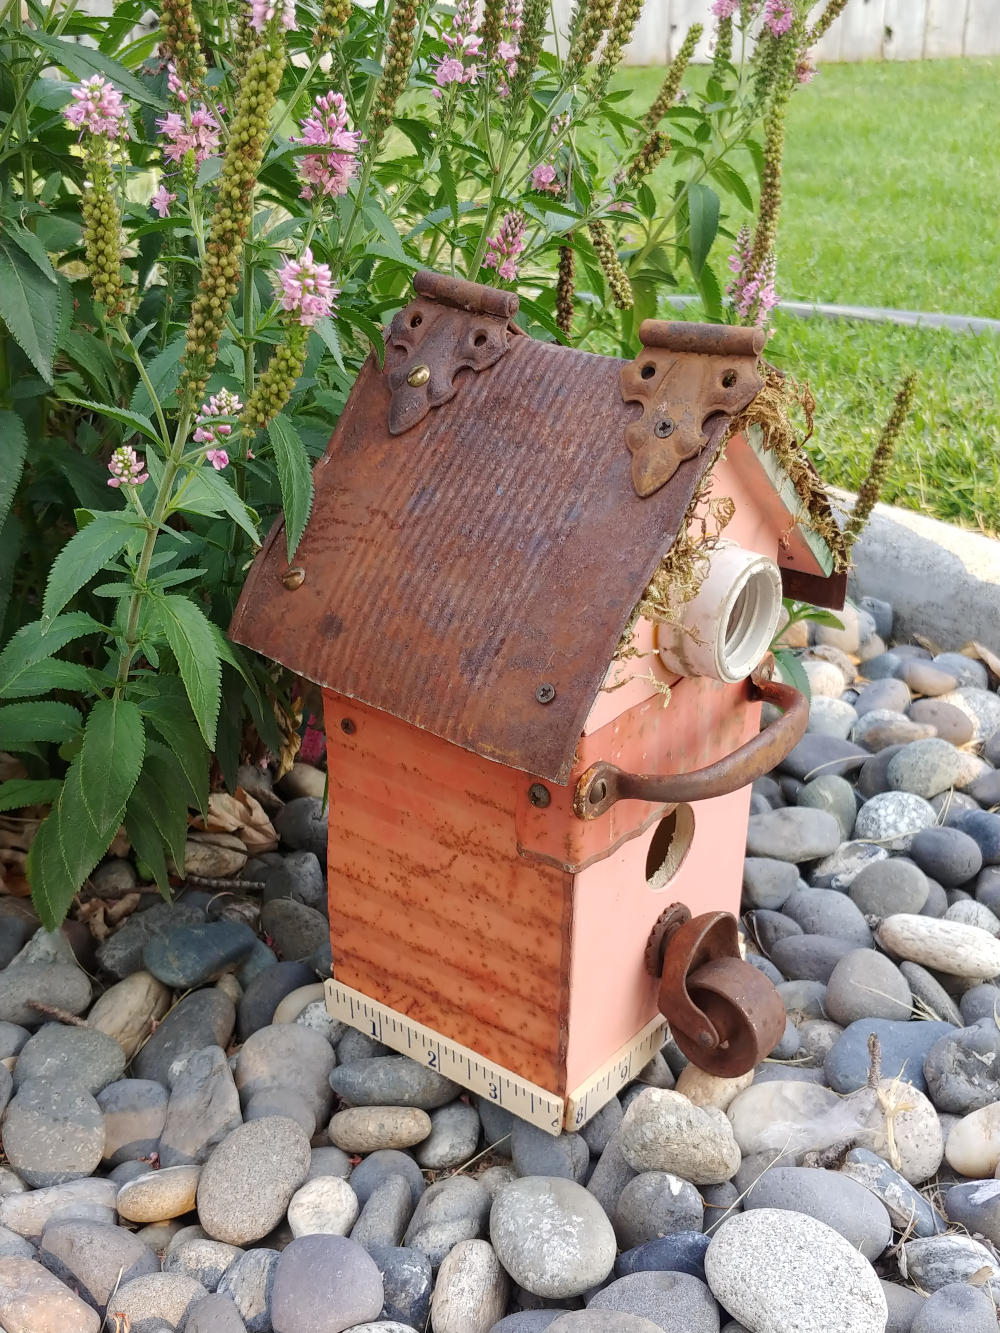 birdhouses made with old junk